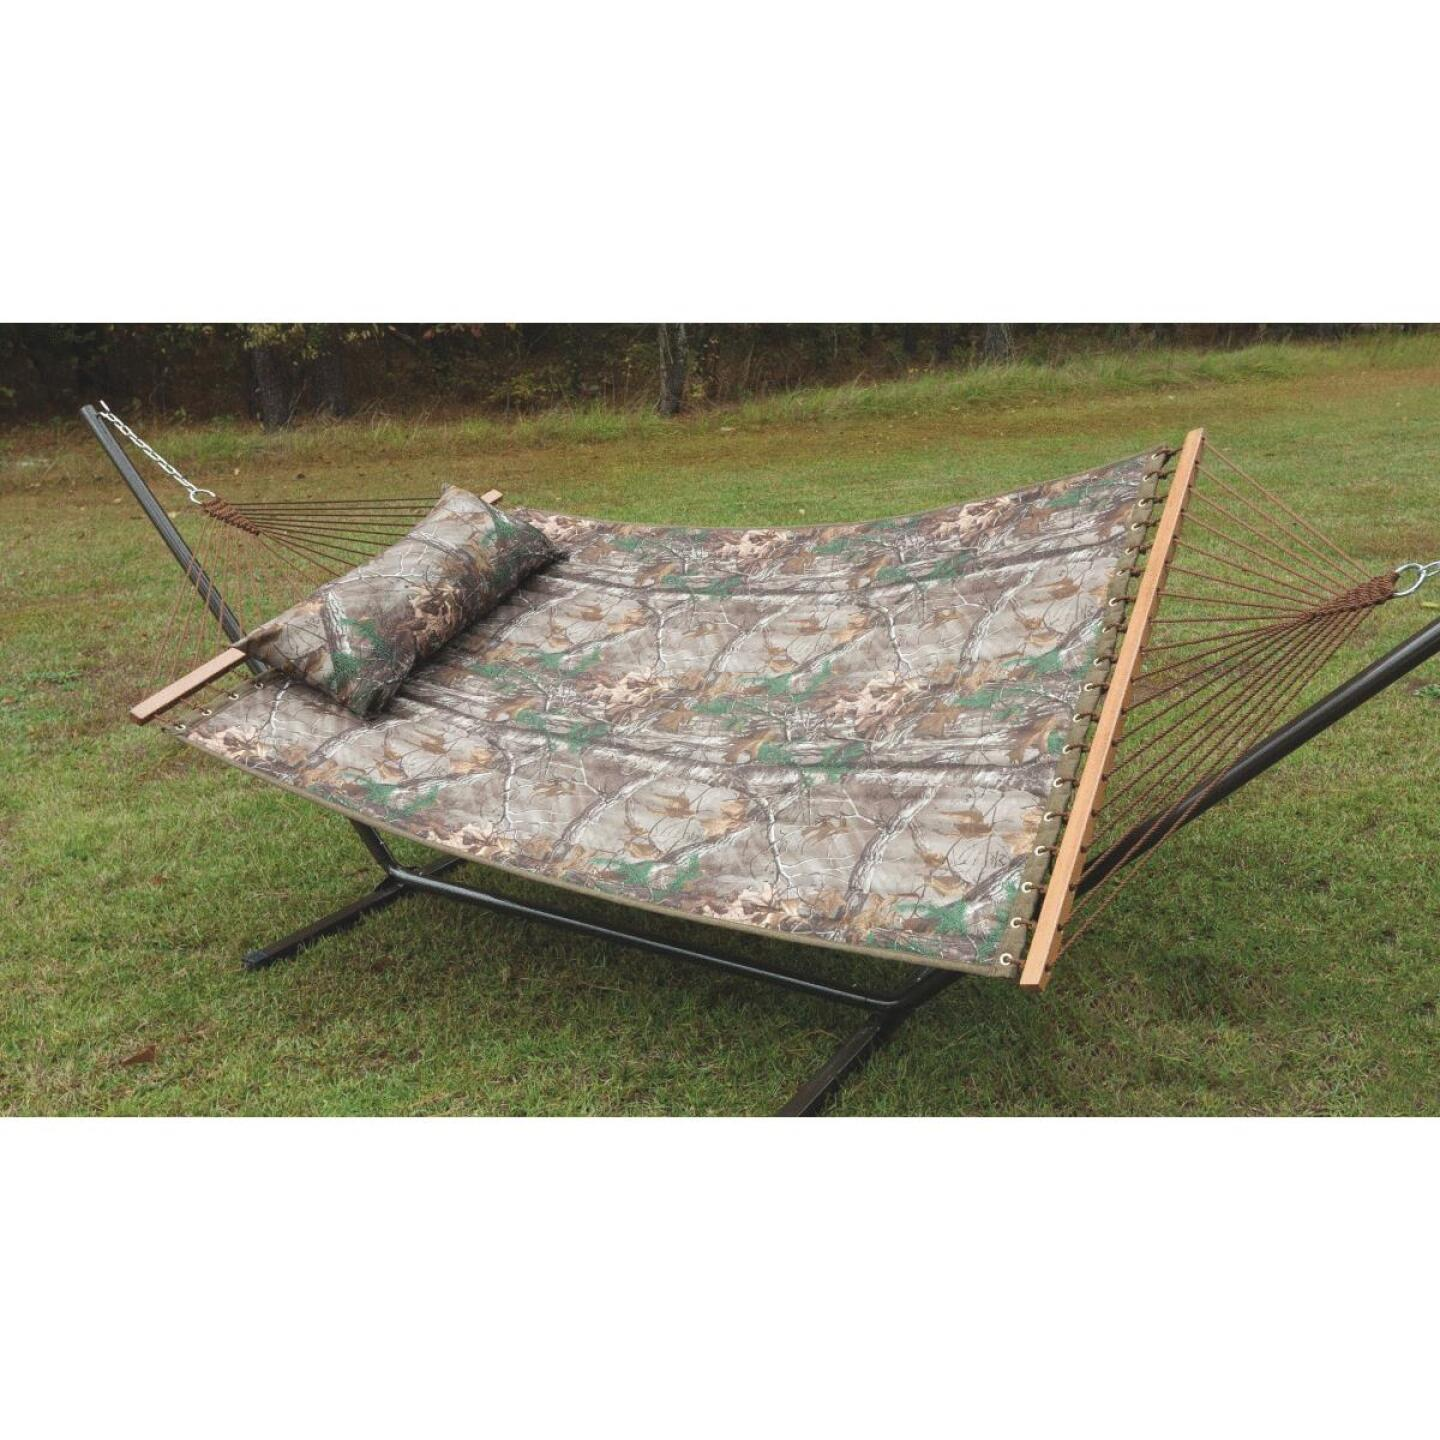 Castaway RealTree Quilted Hammock with Pillow & Stand Image 2